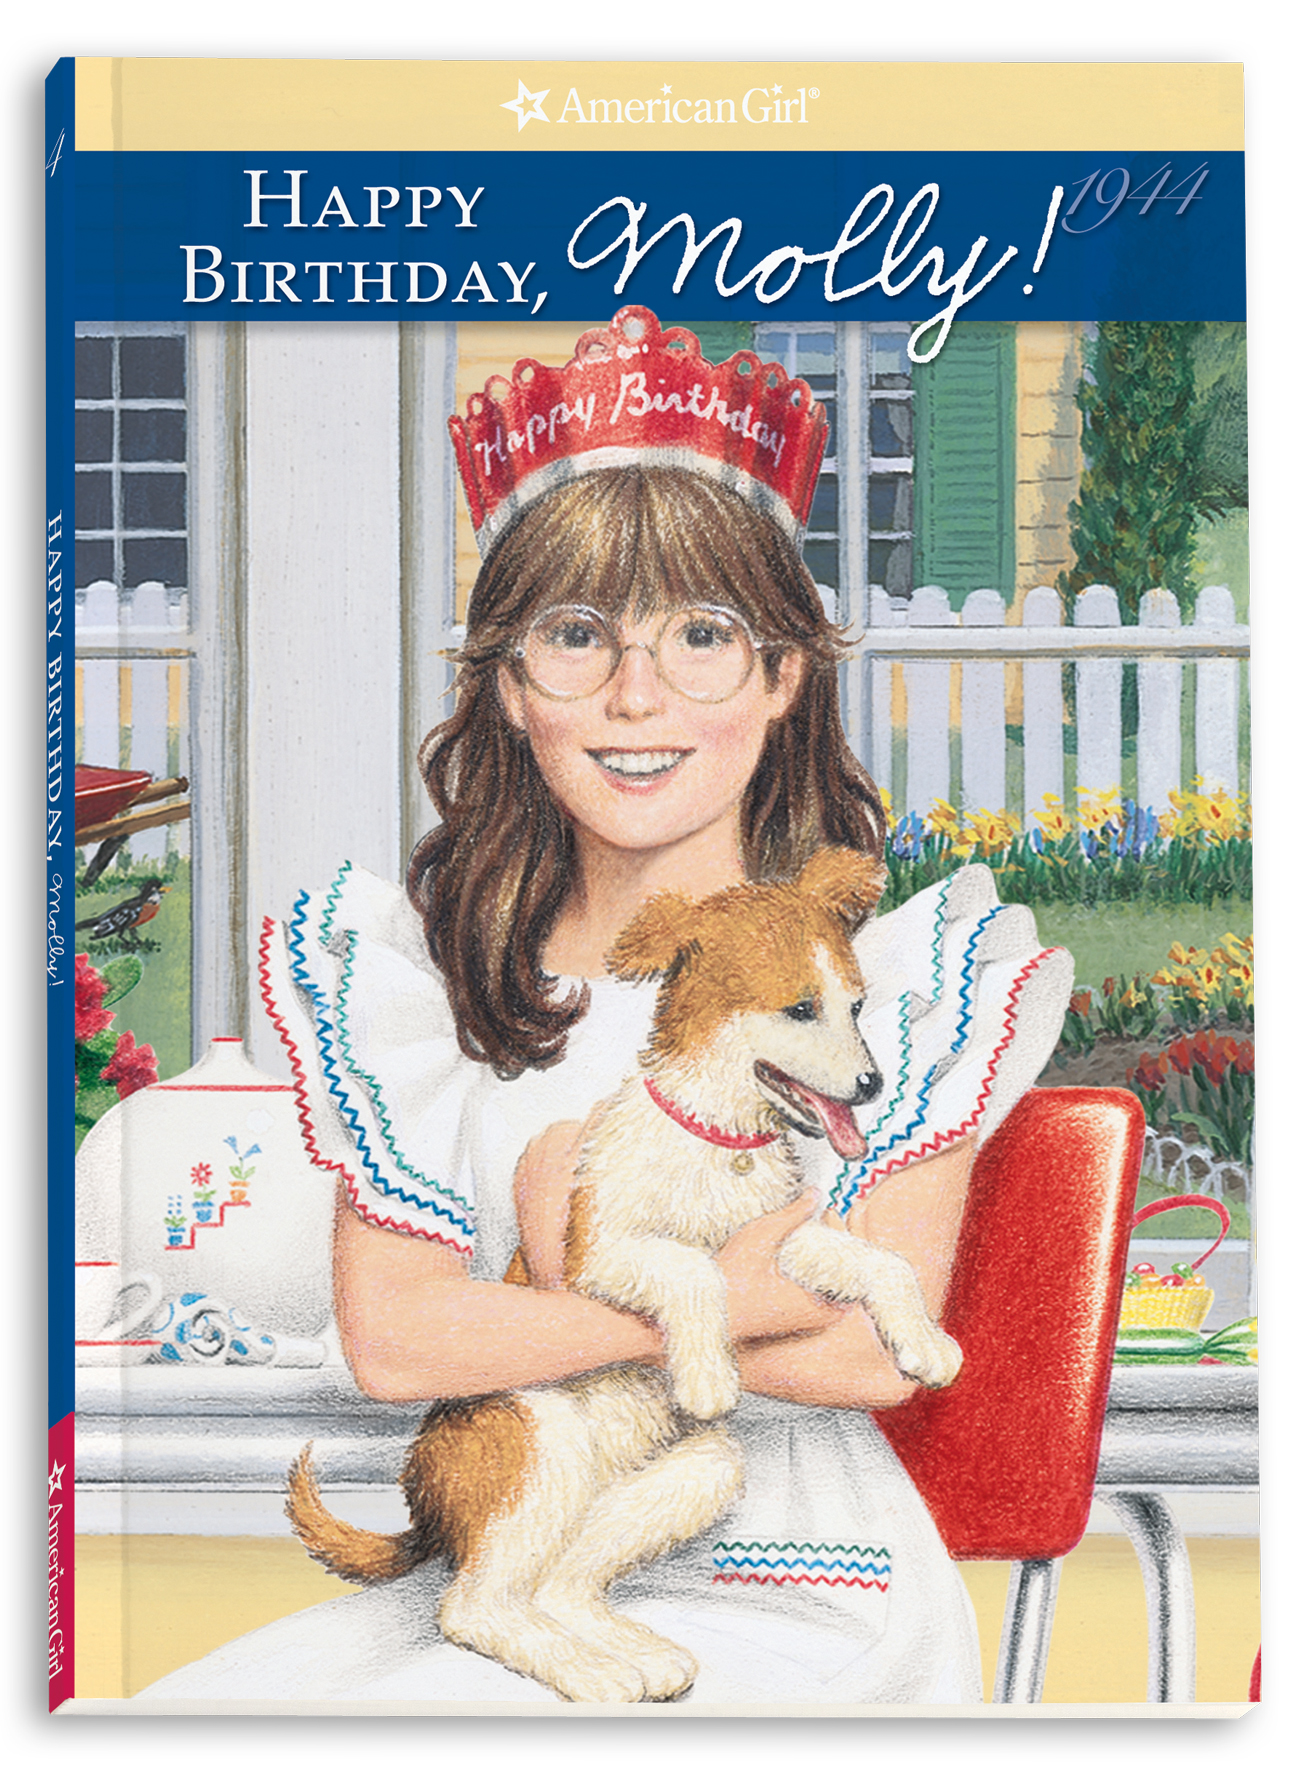 Happy Birthday, Molly! | American Girl Wiki | FANDOM powered